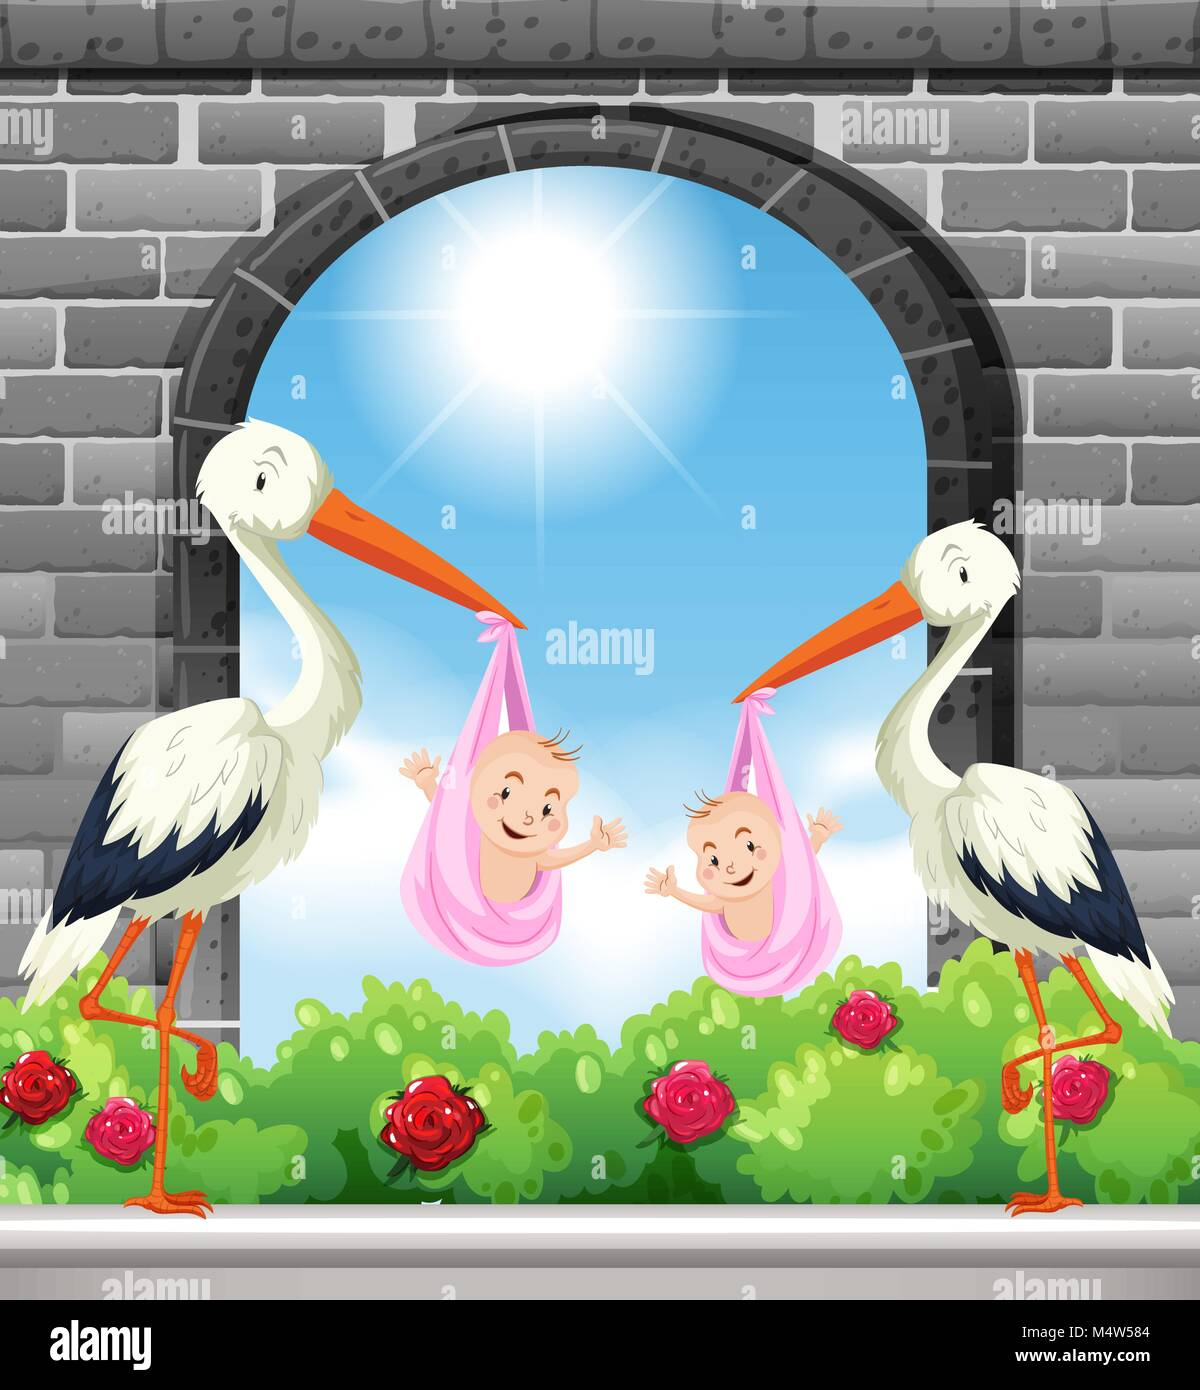 Two birds deliver baby girls illustration - Stock Vector